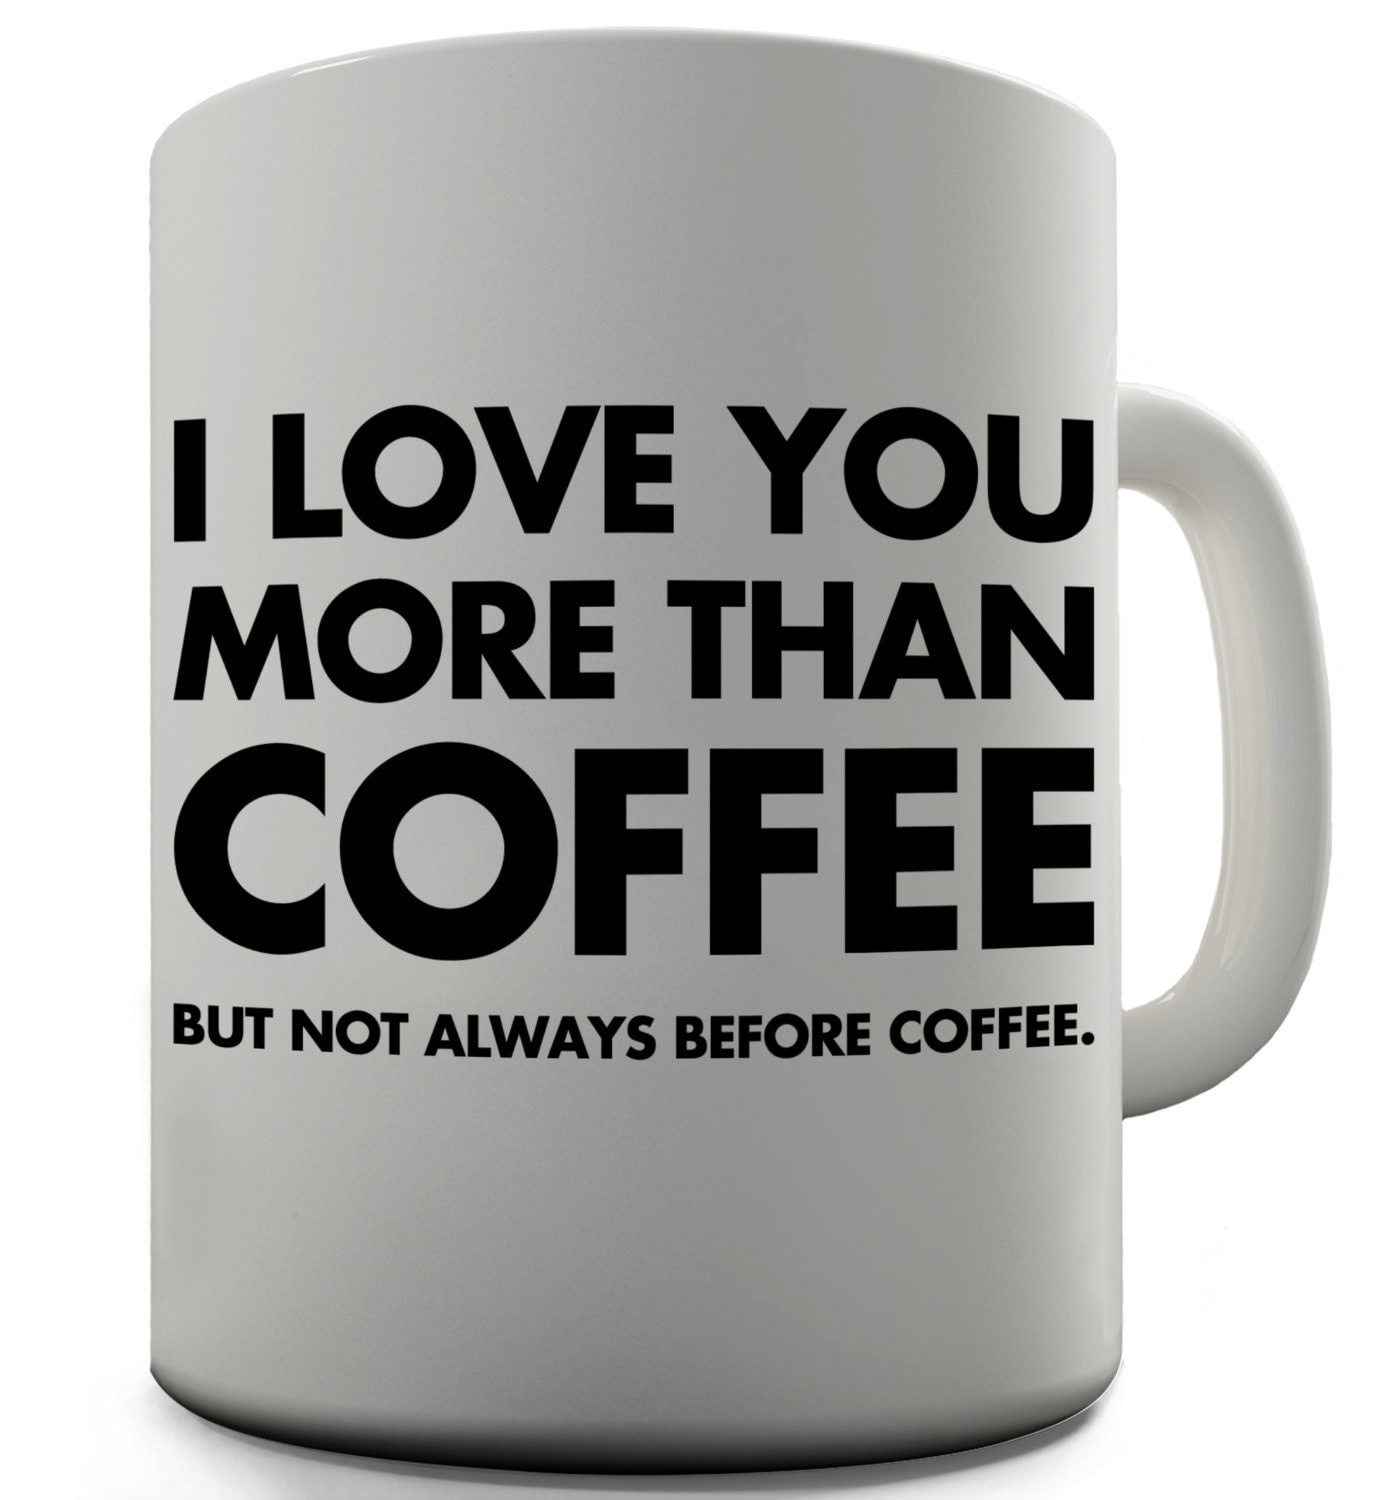 I Love You More Than Coffee: I Love You More Than Coffee Funny Novelty By